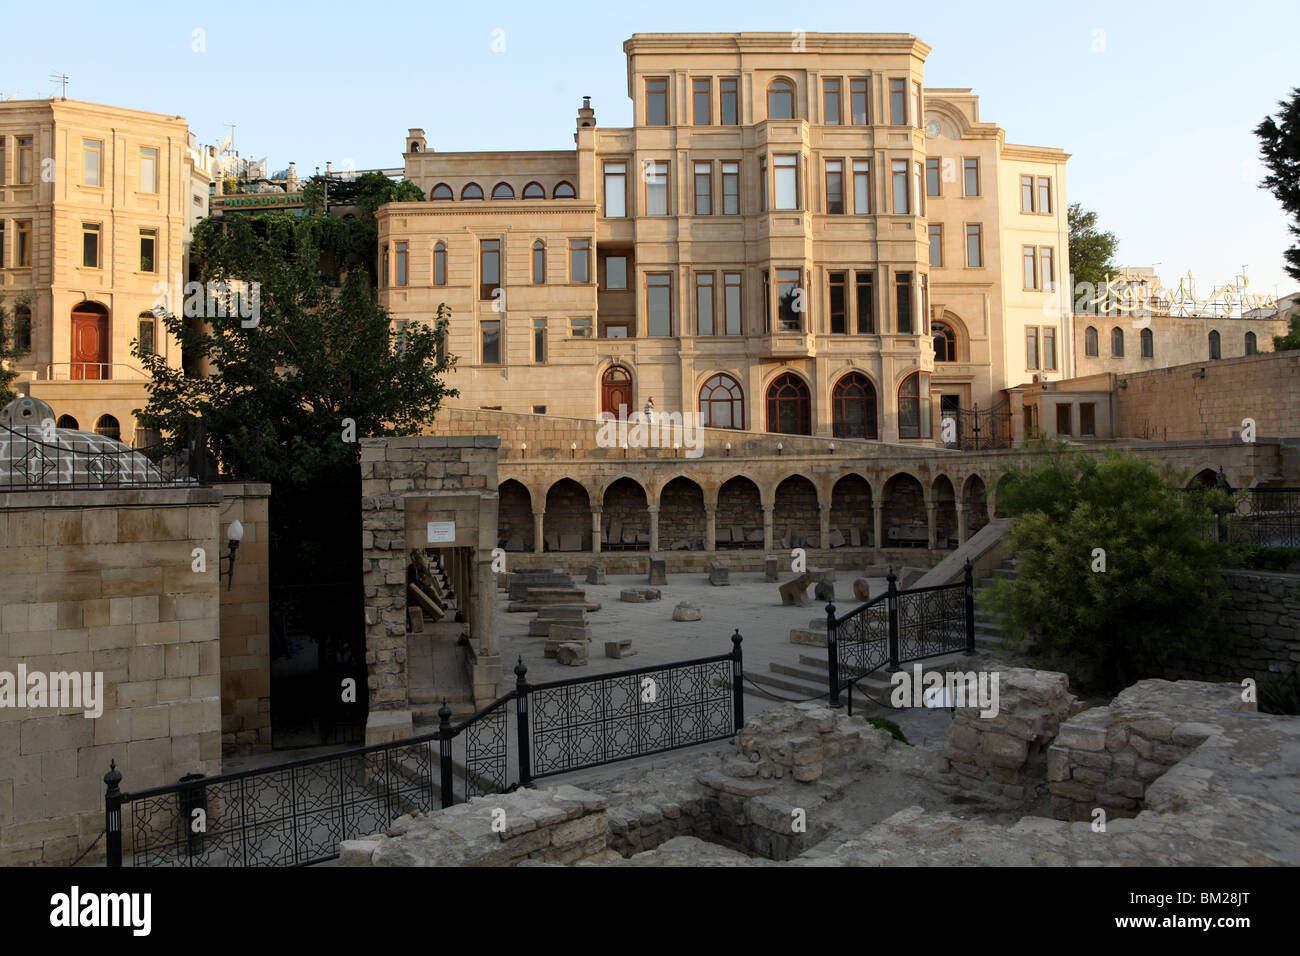 Sun rises on the hammam and markets near the Maiden Tower in the historical walled old city of Baku in Azerbaijan. - Stock Image